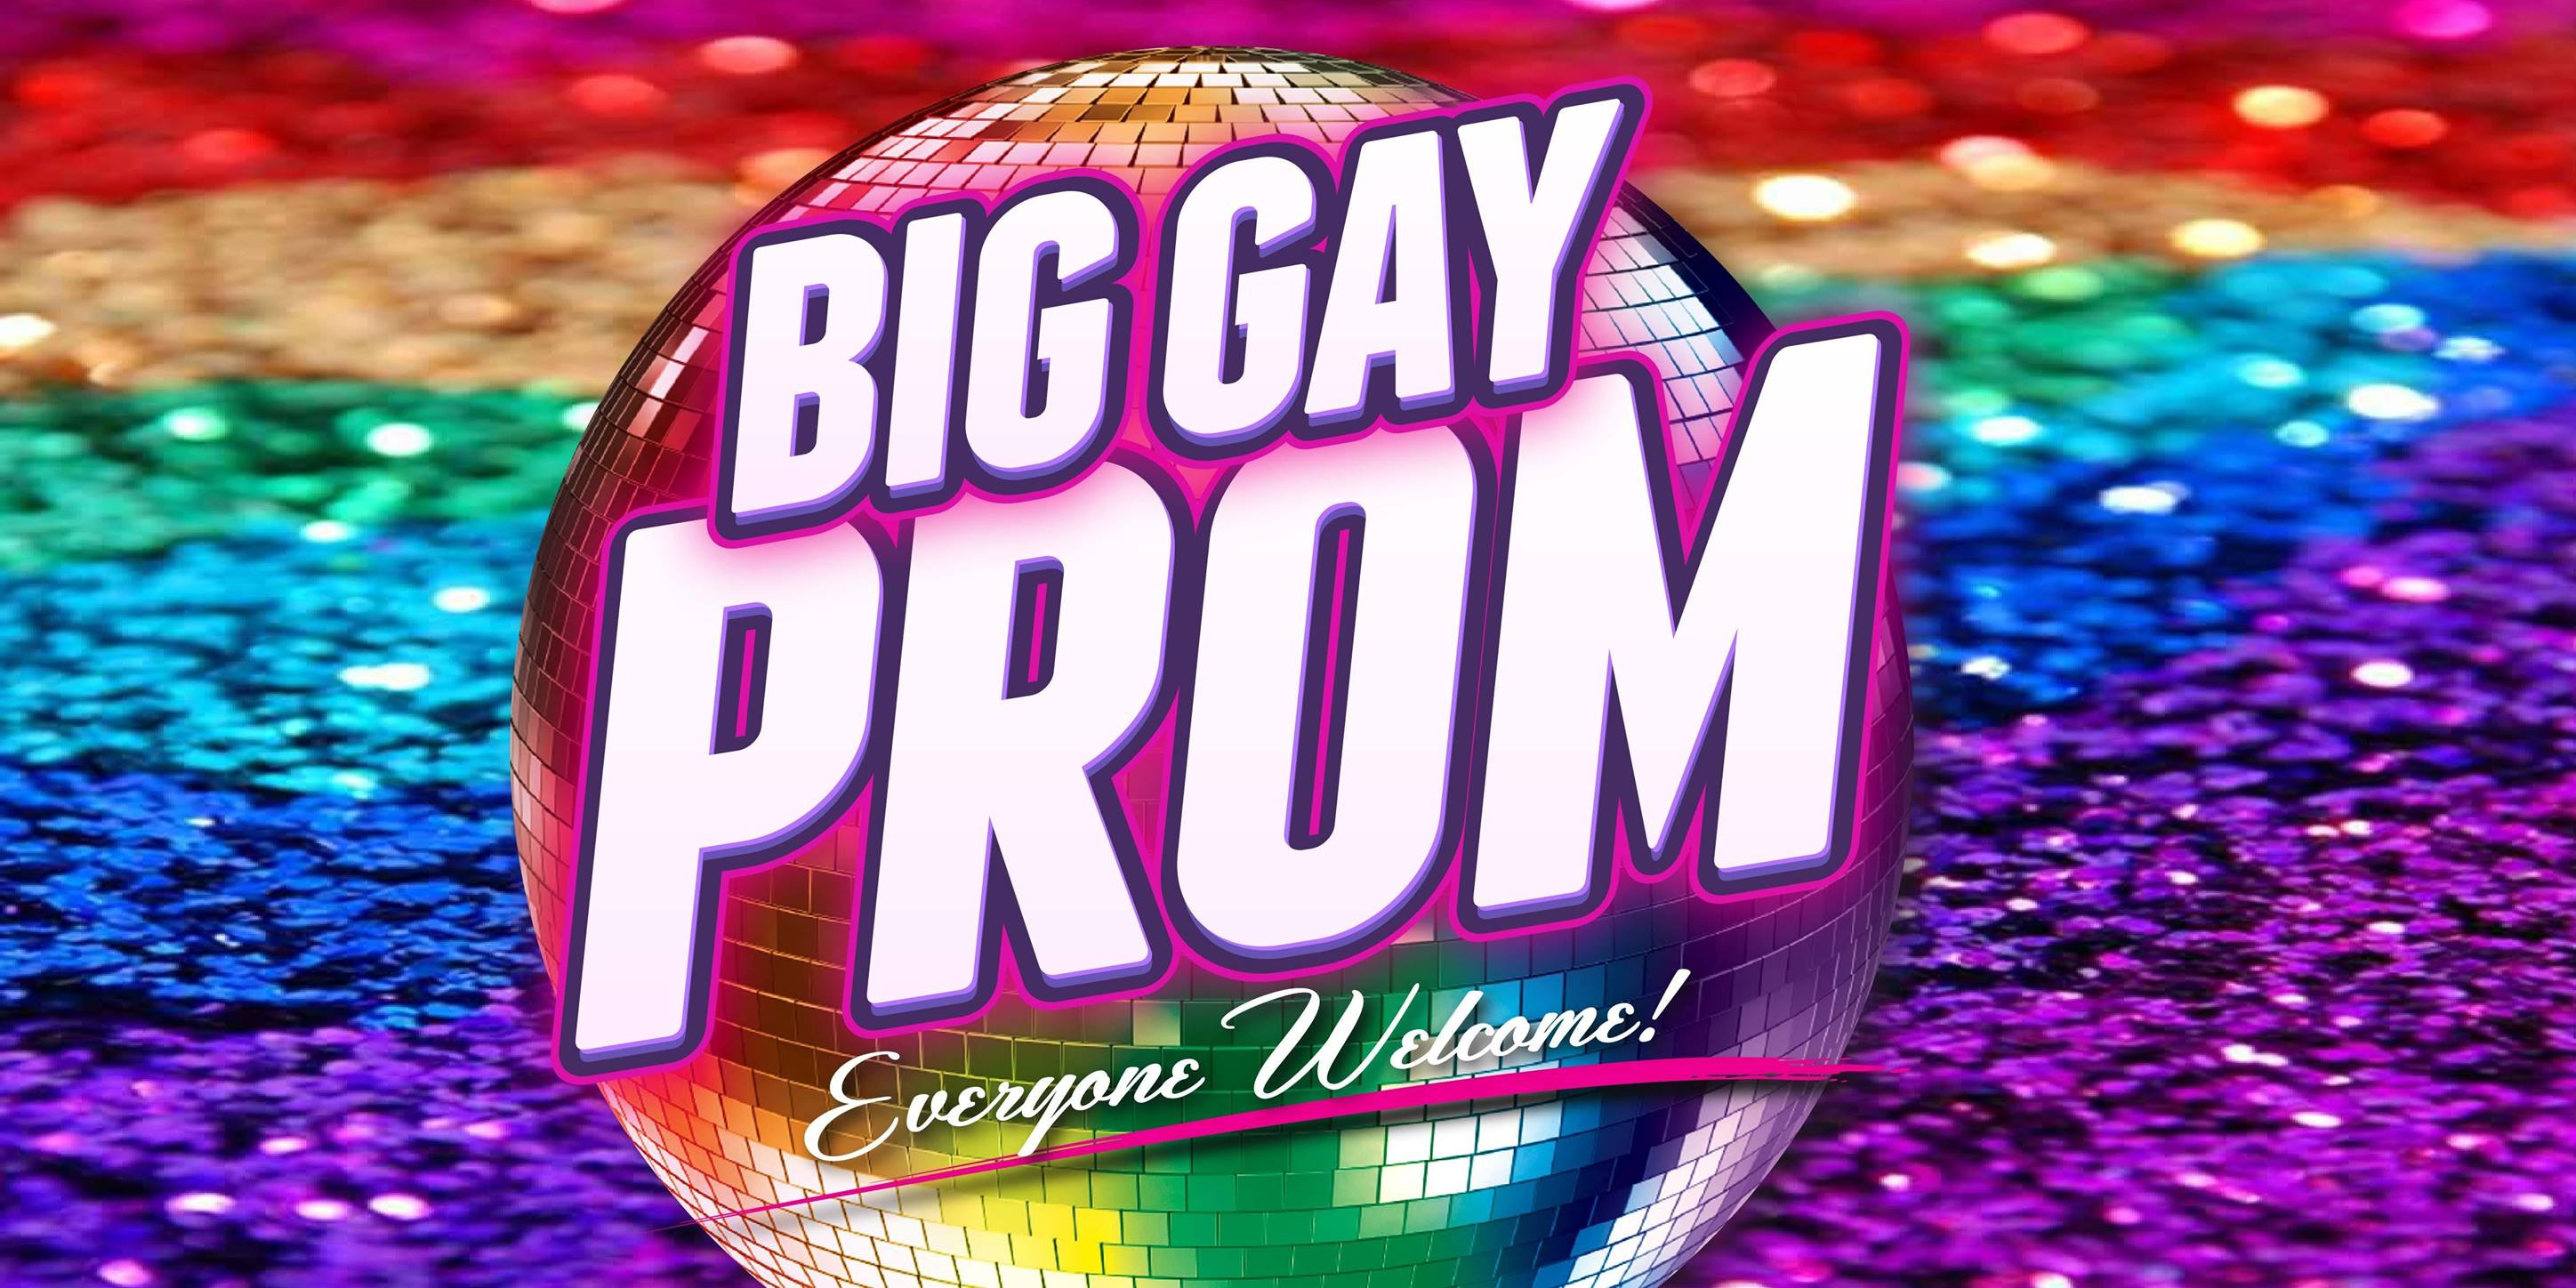 The Big Gay Prom Coming To Parliament House Orlando